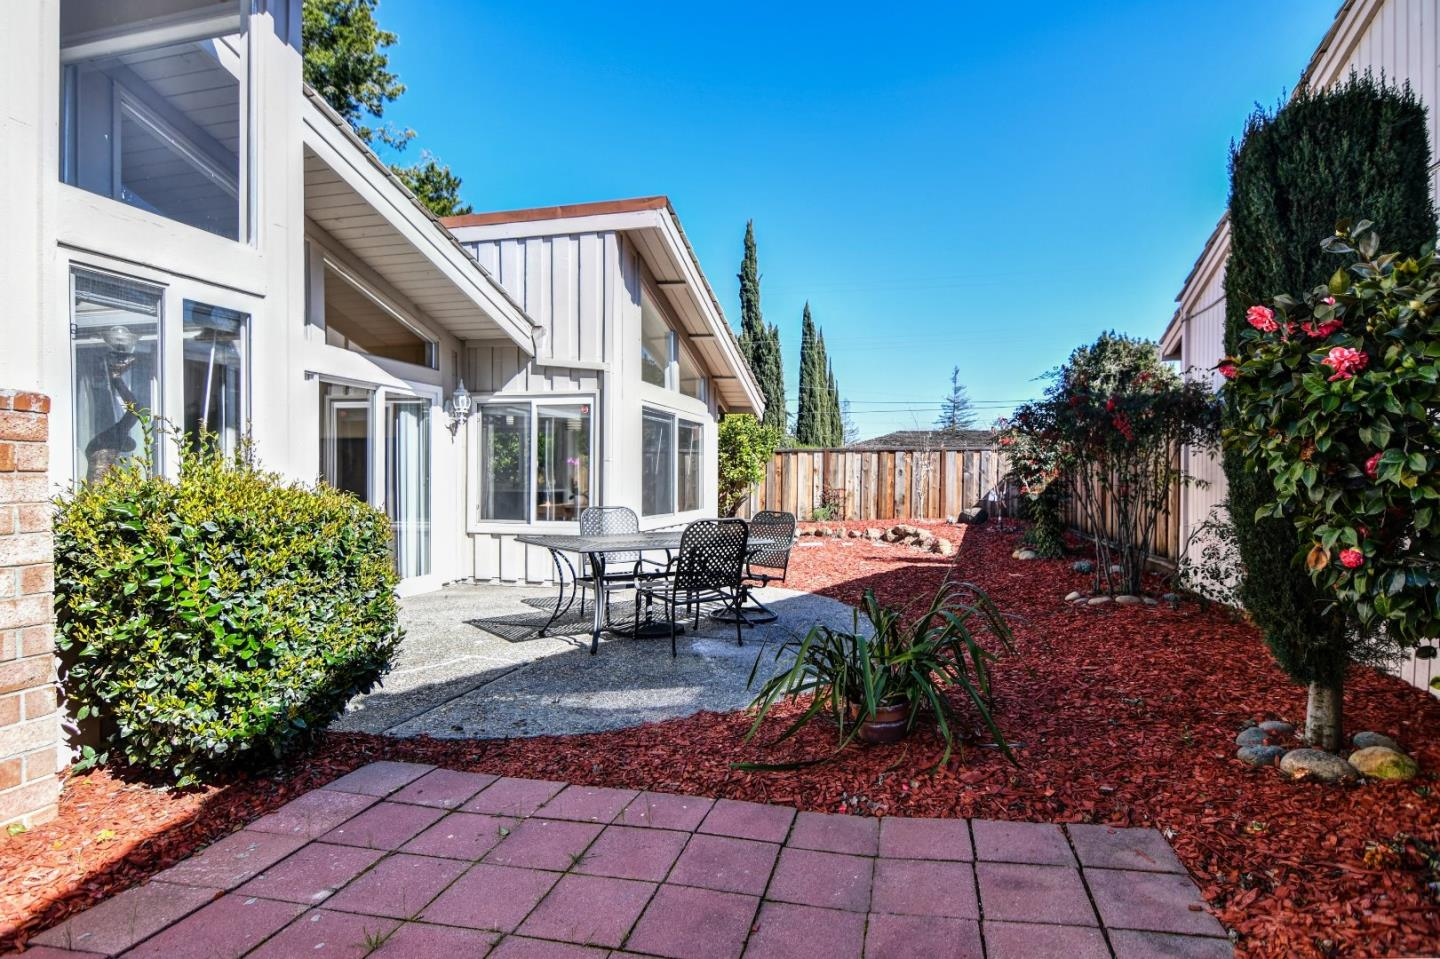 Additional photo for property listing at 12042 Plumas Dr  SARATOGA, CALIFORNIA 95070